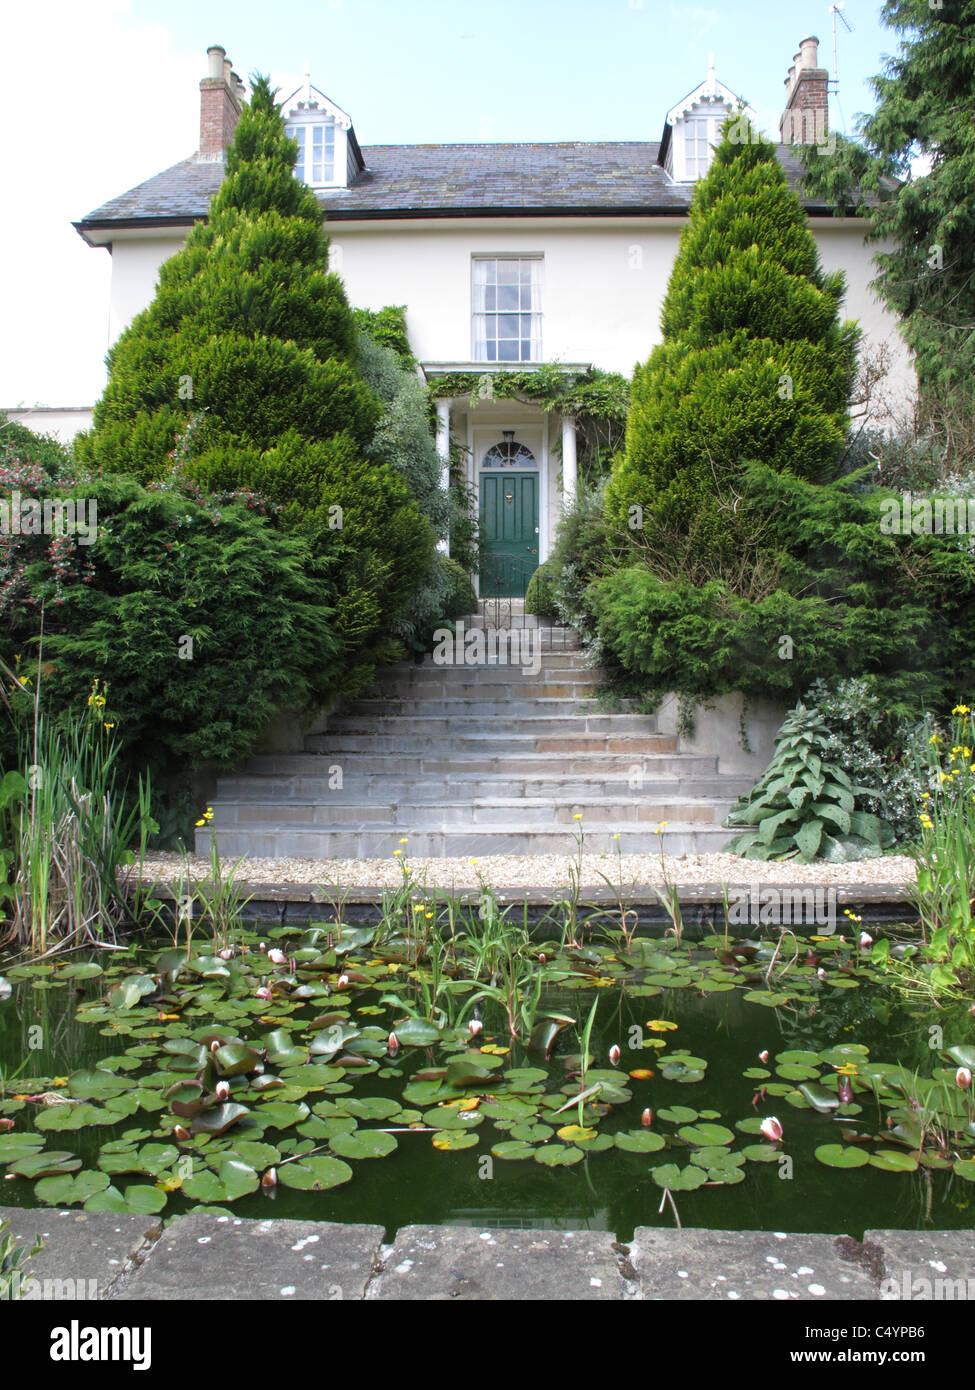 Mature garden with stone steps leading to a Georgian house, a pond in the foreground - Stock Image